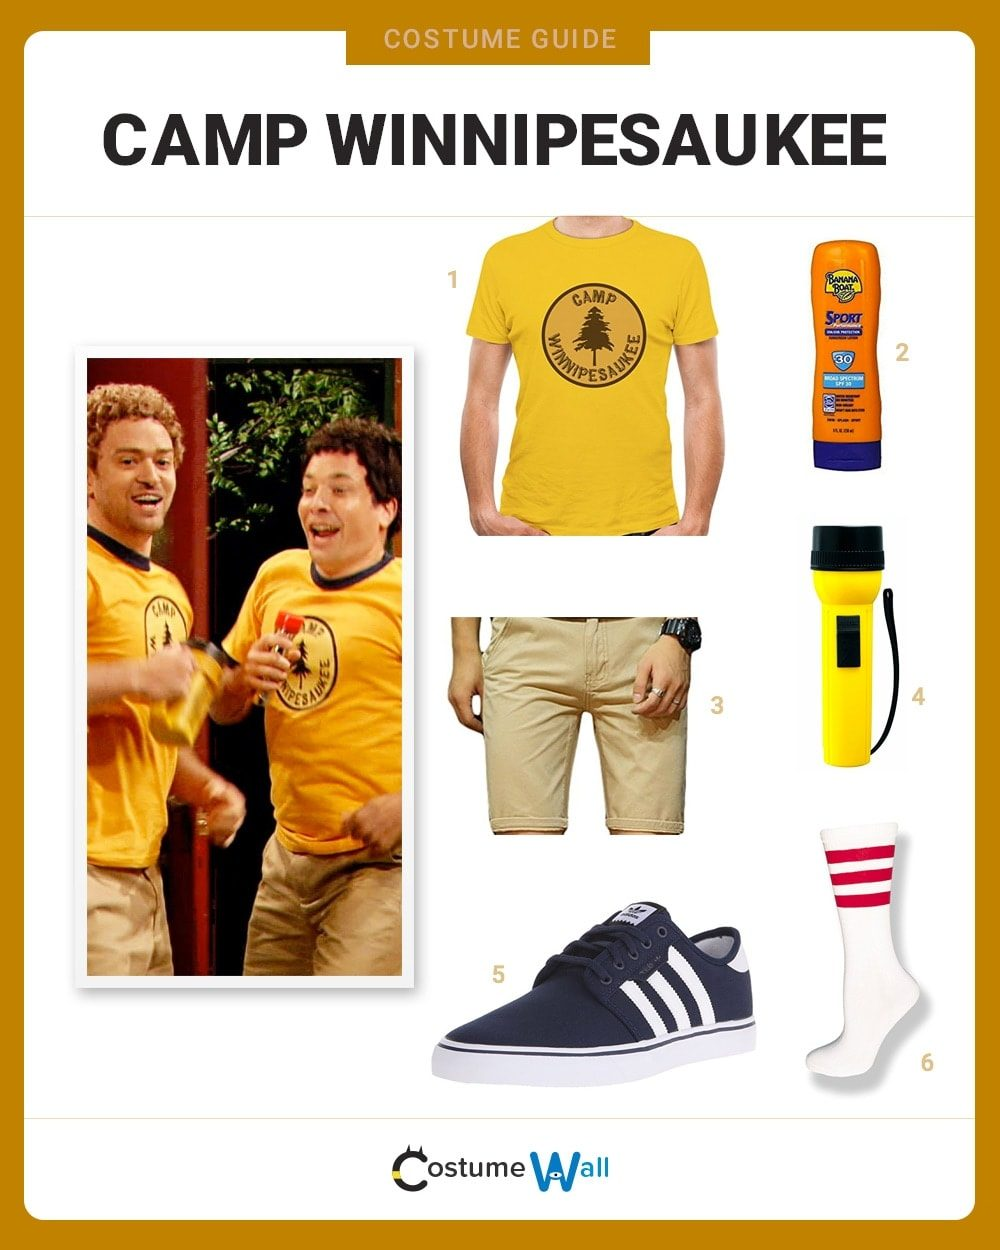 Camp Winnipesaukee Costume Guide